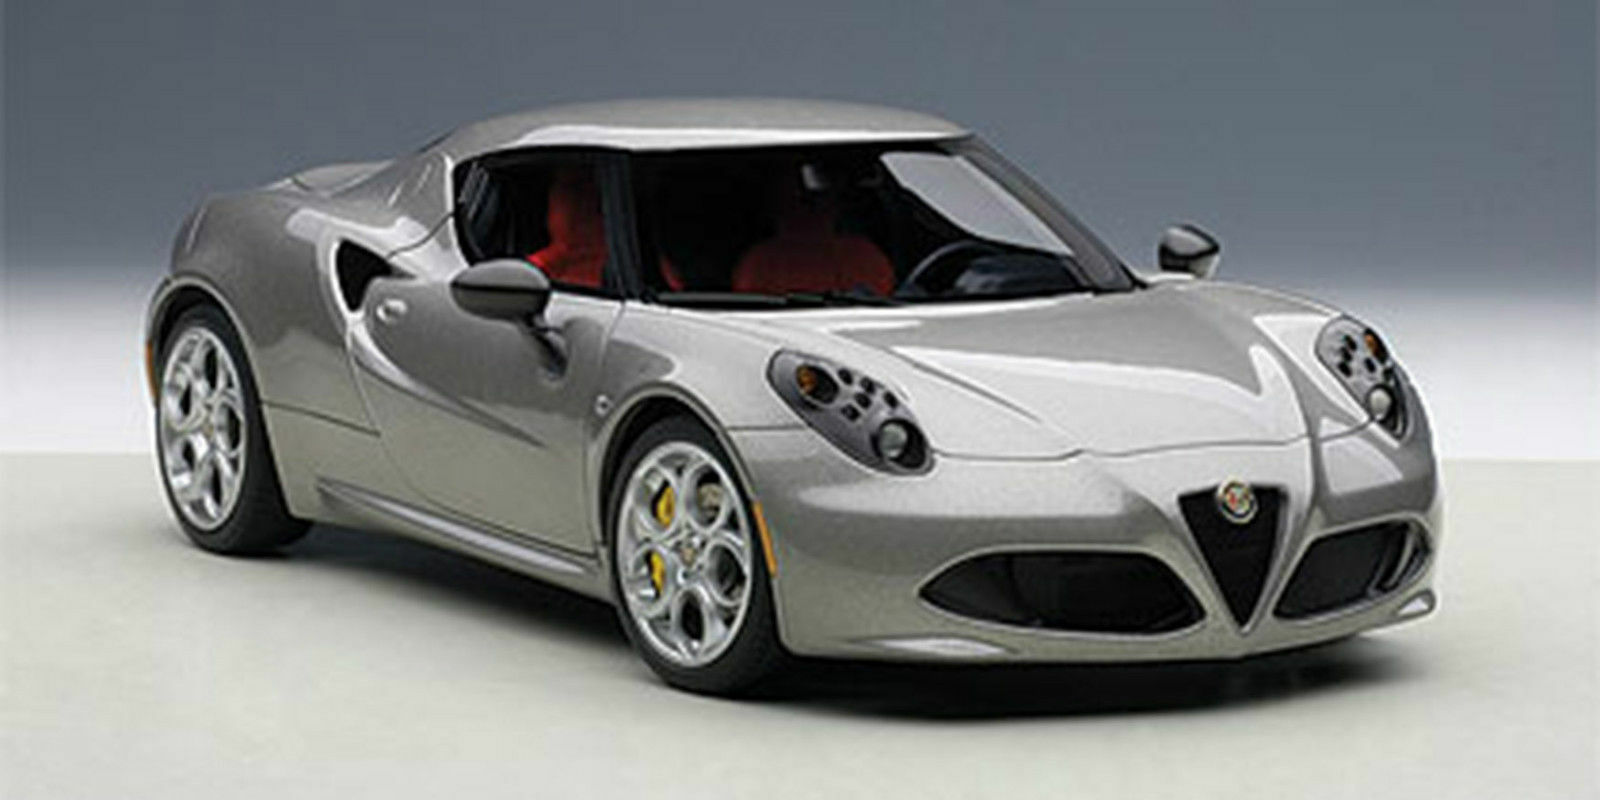 Autoart ALFA ROMEO 4C DARK GREY Composite Model 1:18*New Item!